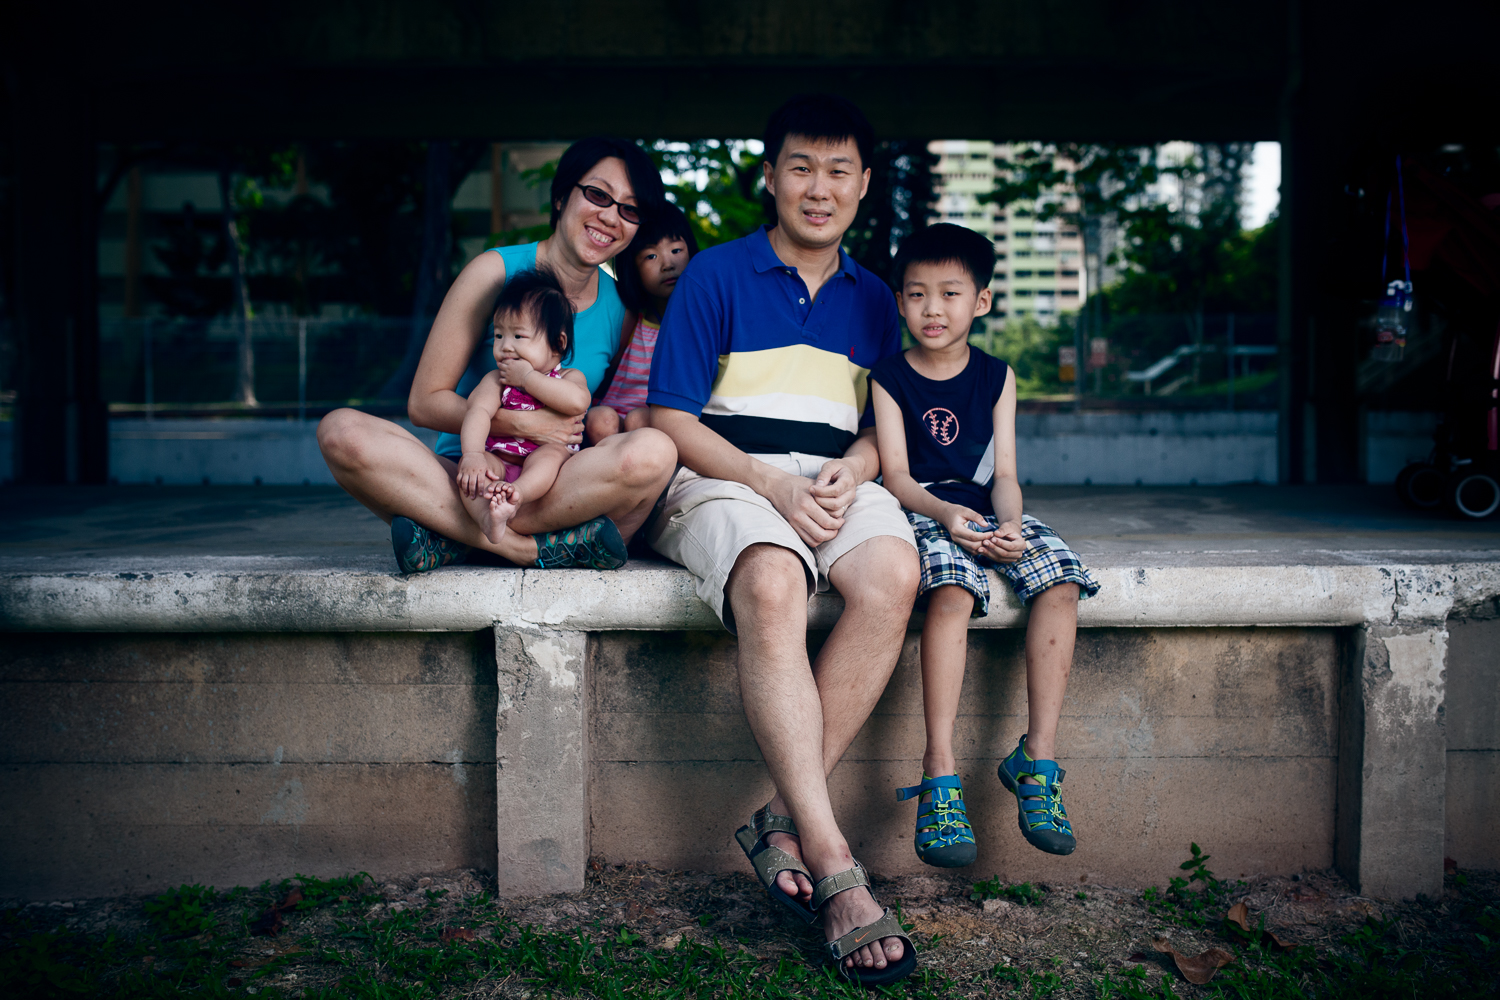 """""""Happiness is about waking up with my loved ones every morning, that is happiness!"""" - Christopher (far right) answering on behalf of the Chor family."""